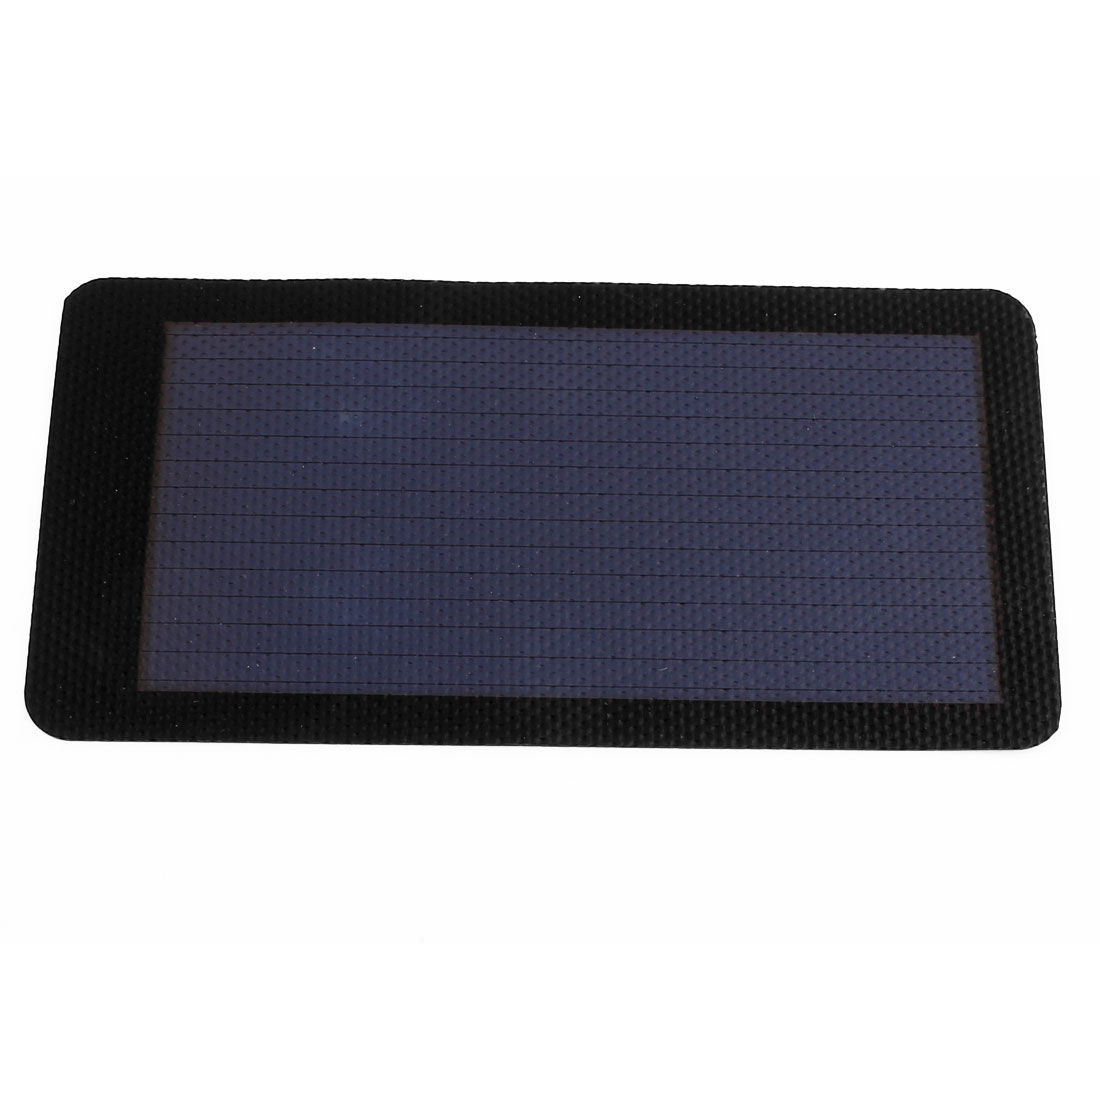 DC 2V 500mA 1W Flexible Film Rectangle Energy Saving Solar Cell Panel Module for Charger